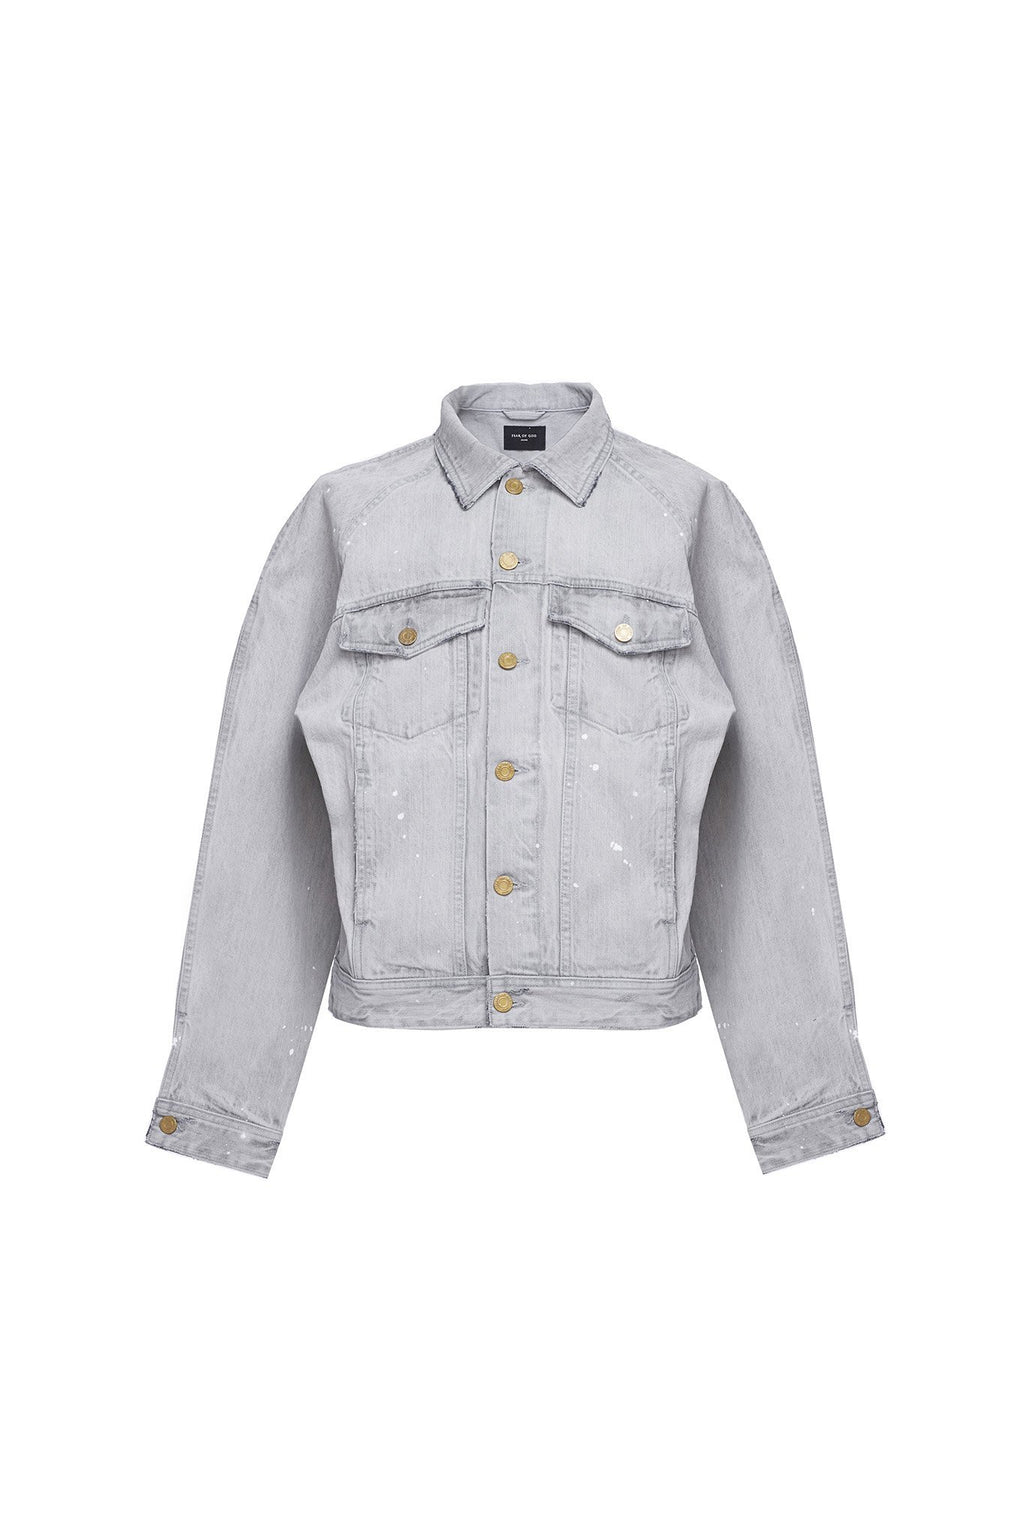 Selvedge Denim Raglan Trucker Jacket